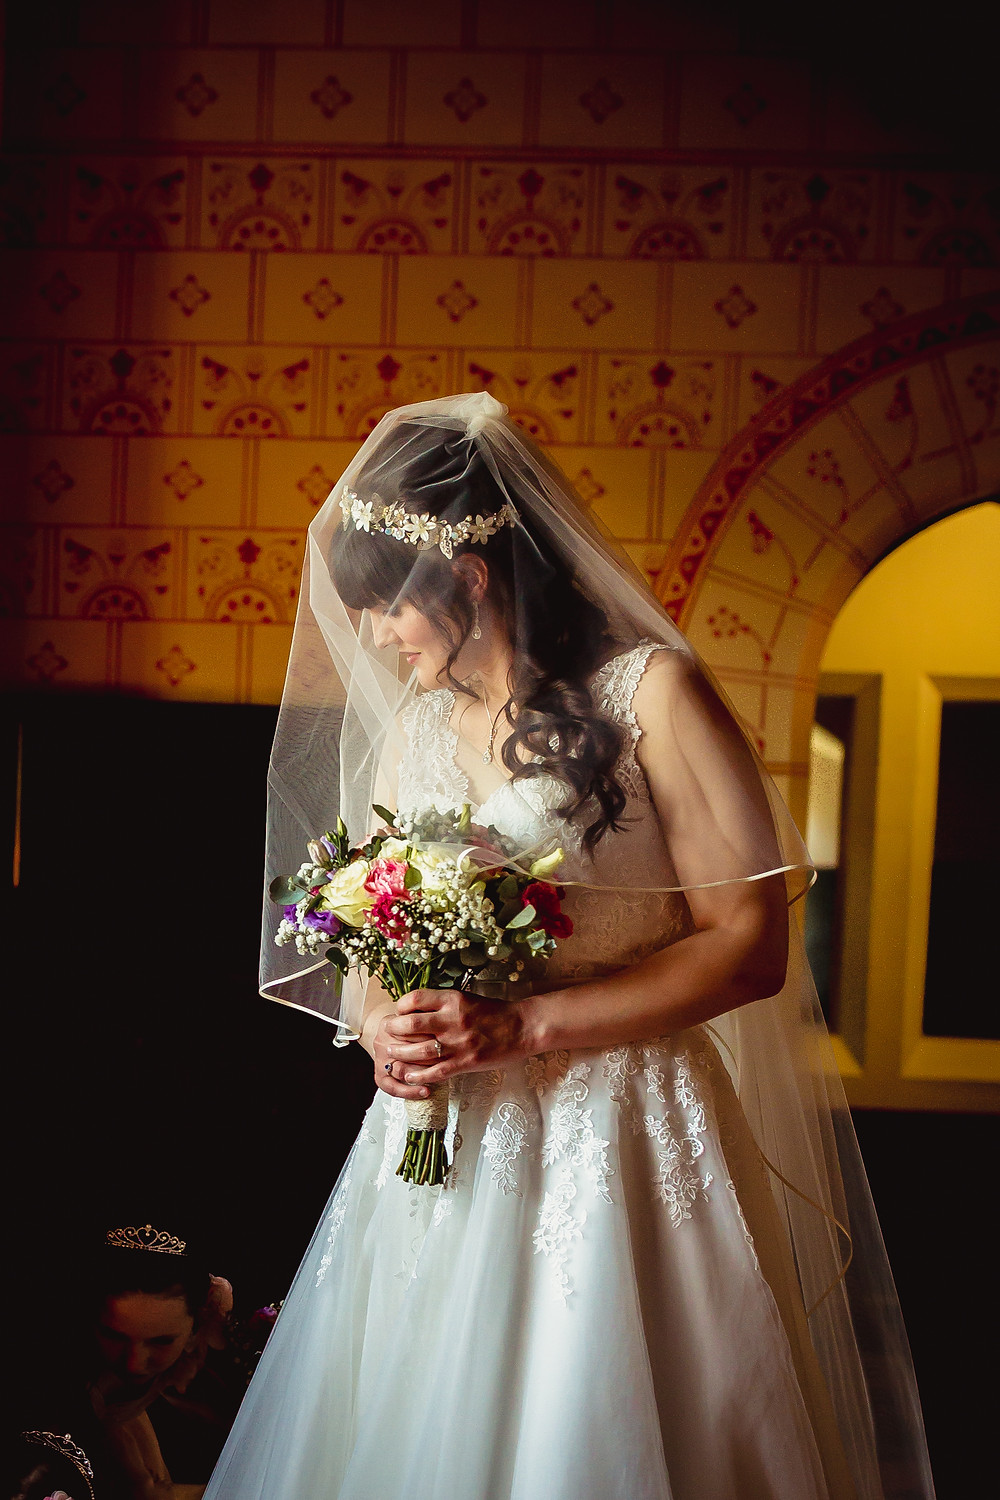 Getting married at Castell Coch